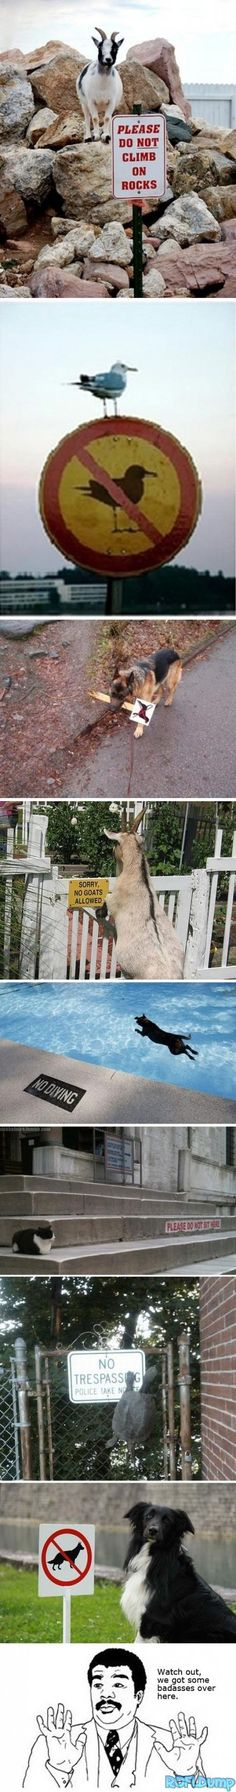 Animal rebels #funny #dog #lol #rebel #animal #goat